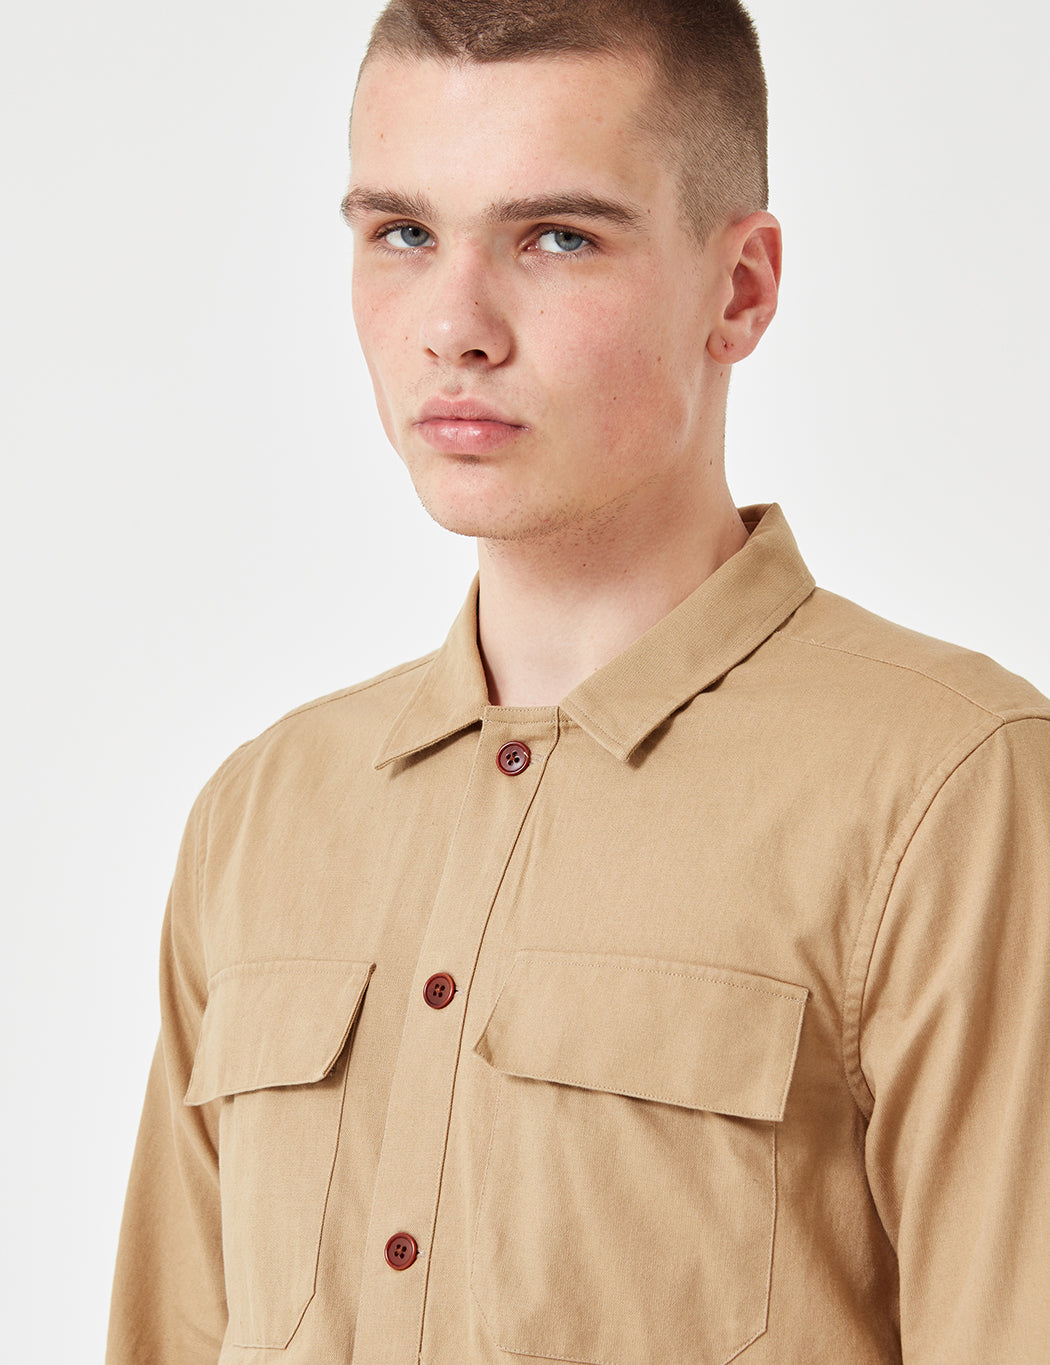 Gant Rugger Chino Overshirt - Burnt Grass Beige